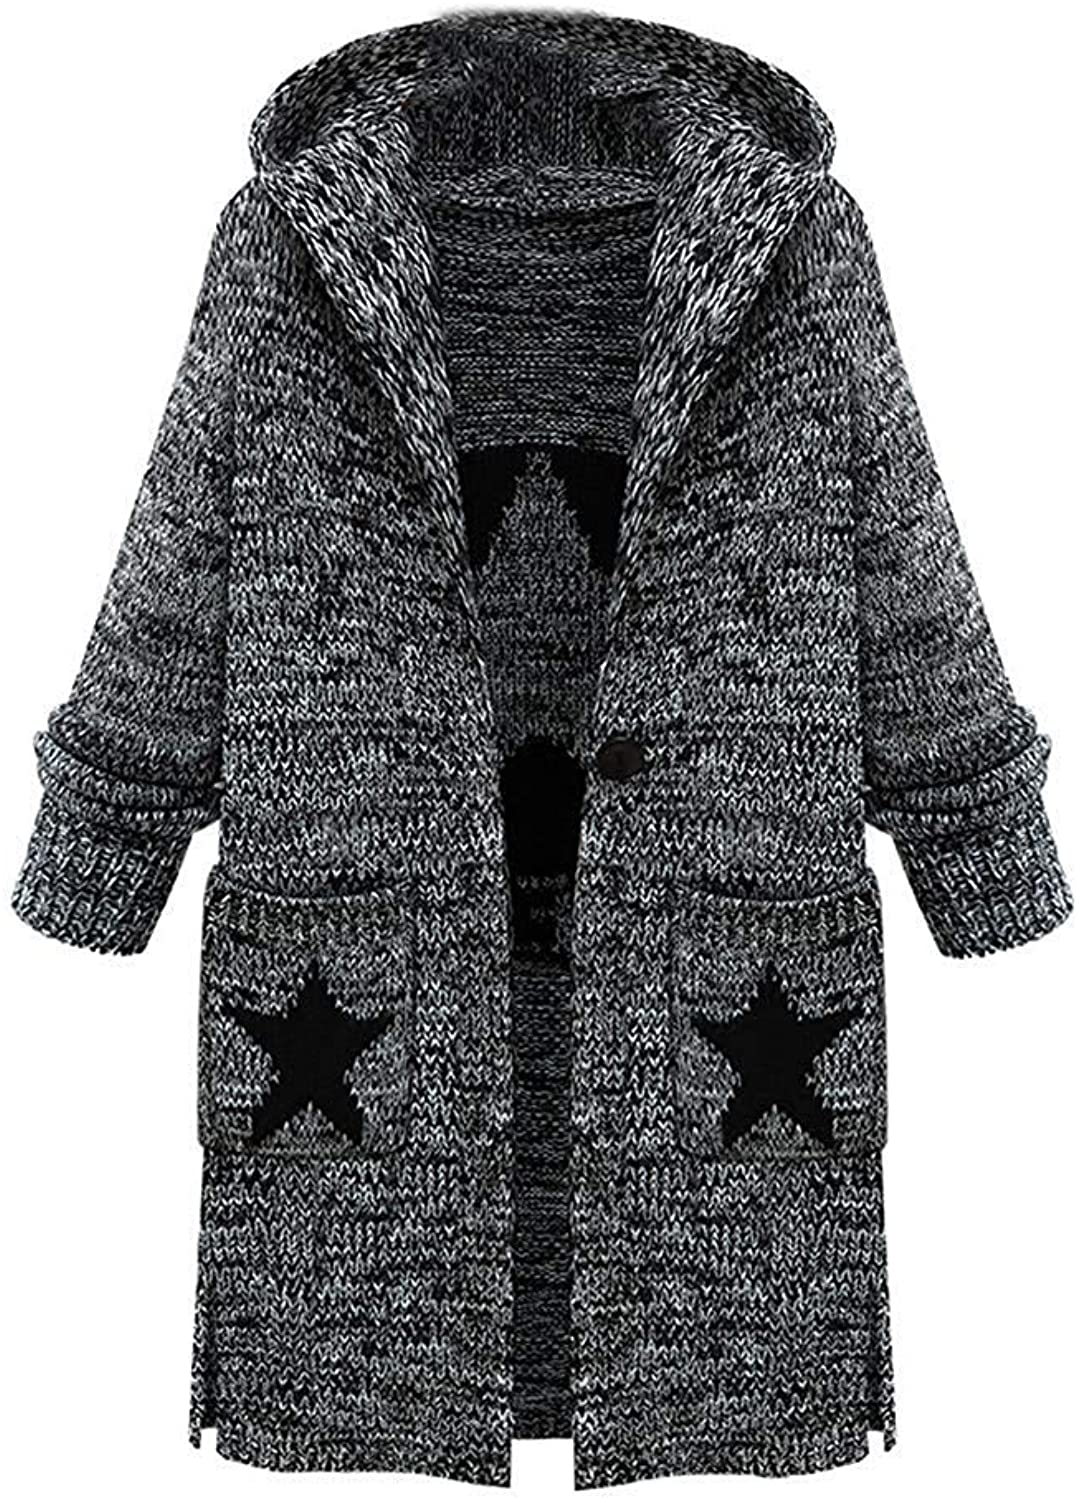 Cloudless Women's Fashion Long Hooded Cardigan Sweater Coat with Pocket